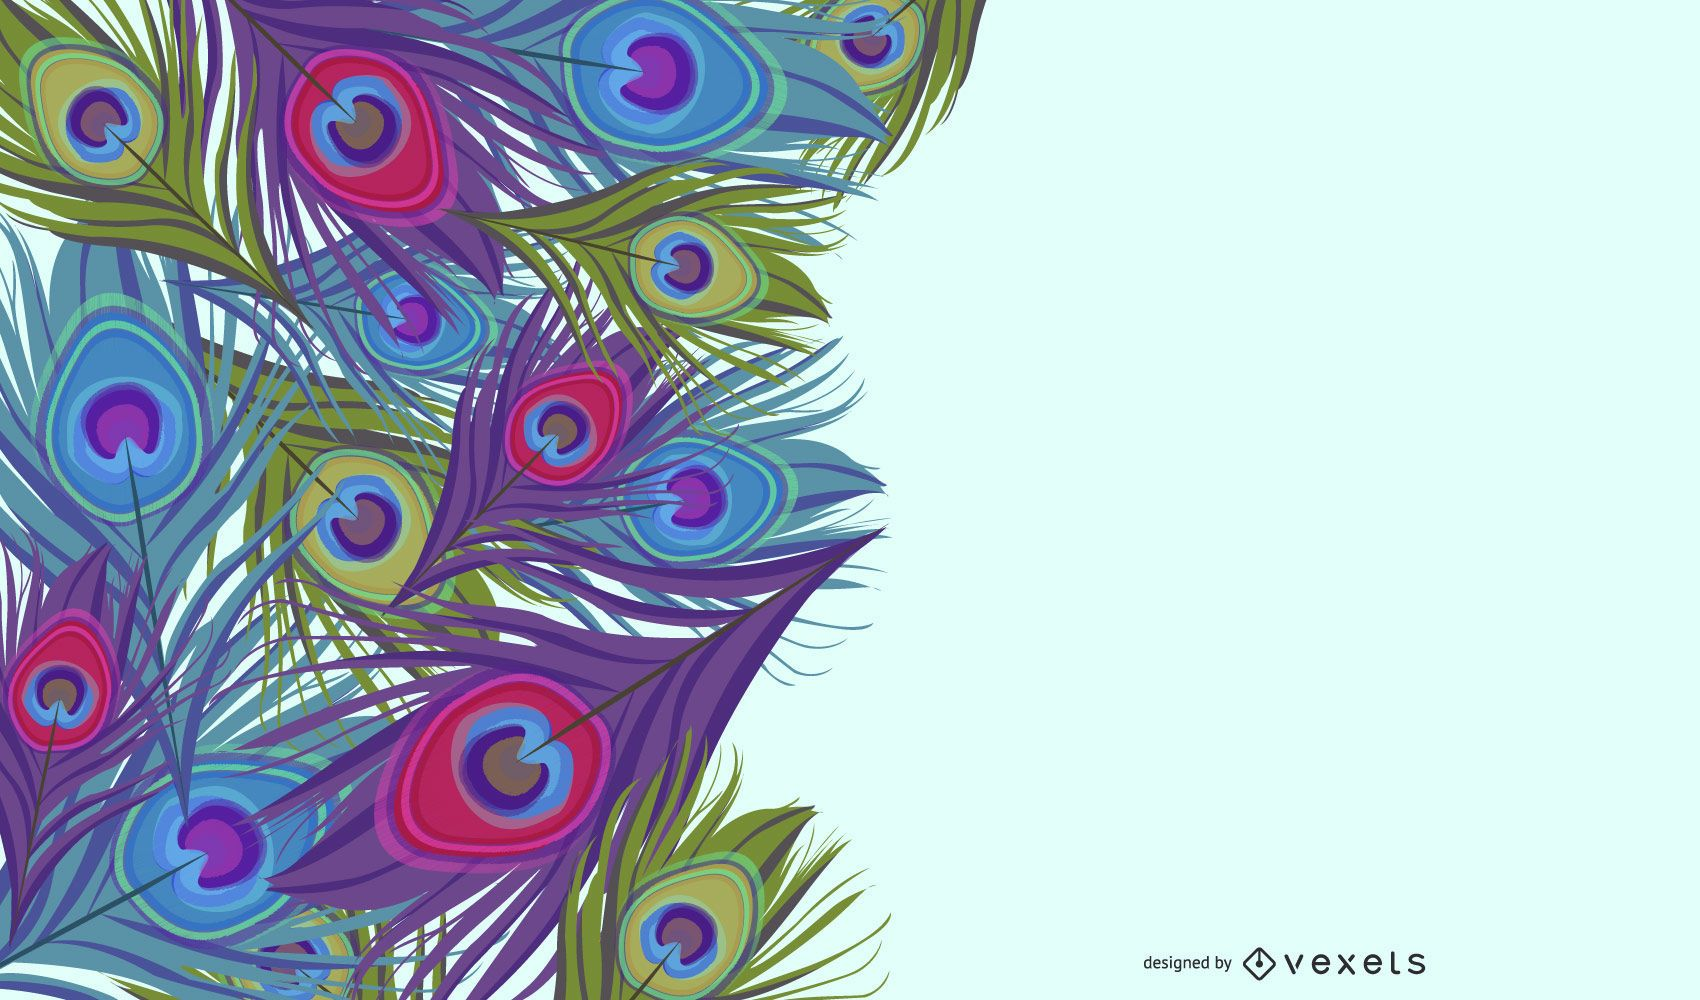 Peacock Feather Background - Vector downloadFeather Background Twitter